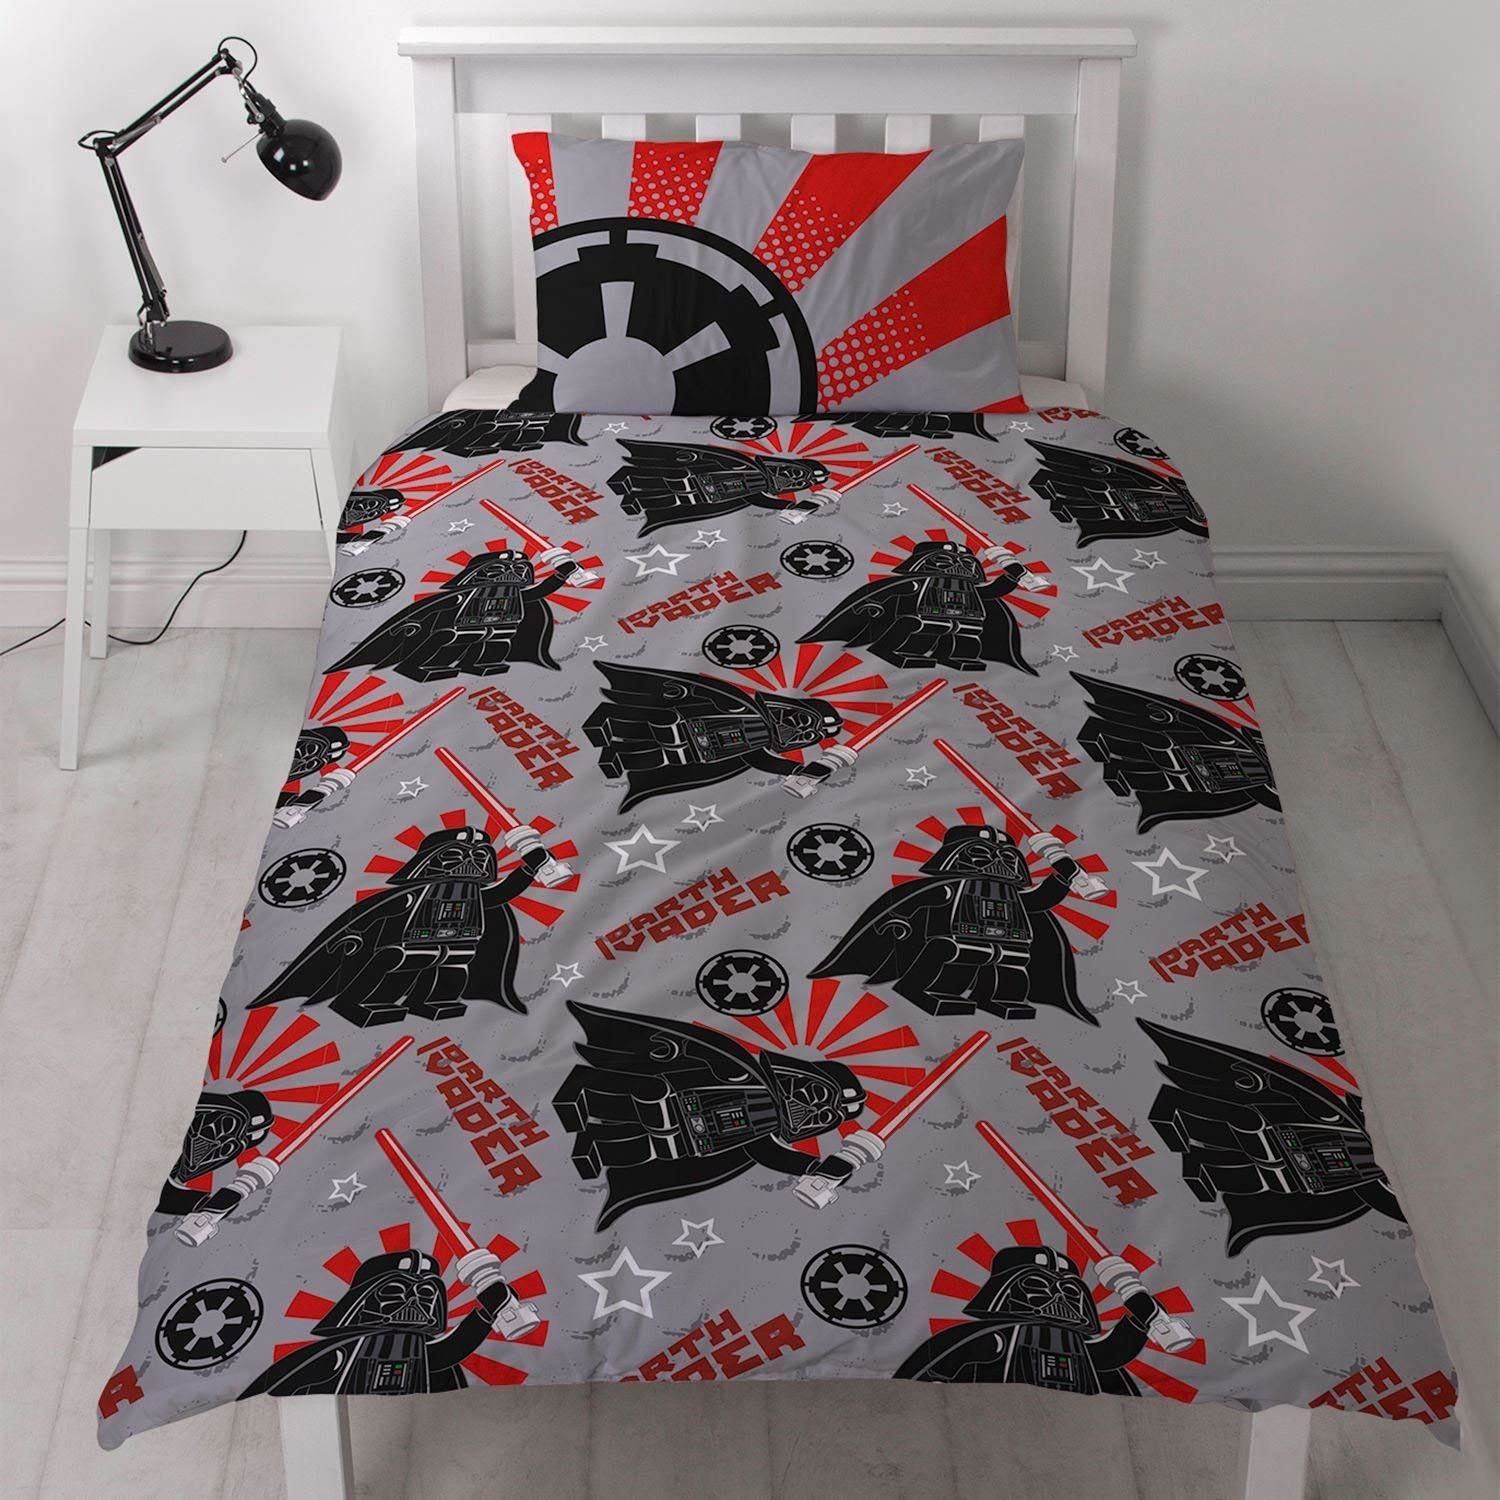 Official-Star-Wars-Licensed-Duvet-Covers-Single-Double-Jedi-Darth-Vader-Lego thumbnail 6